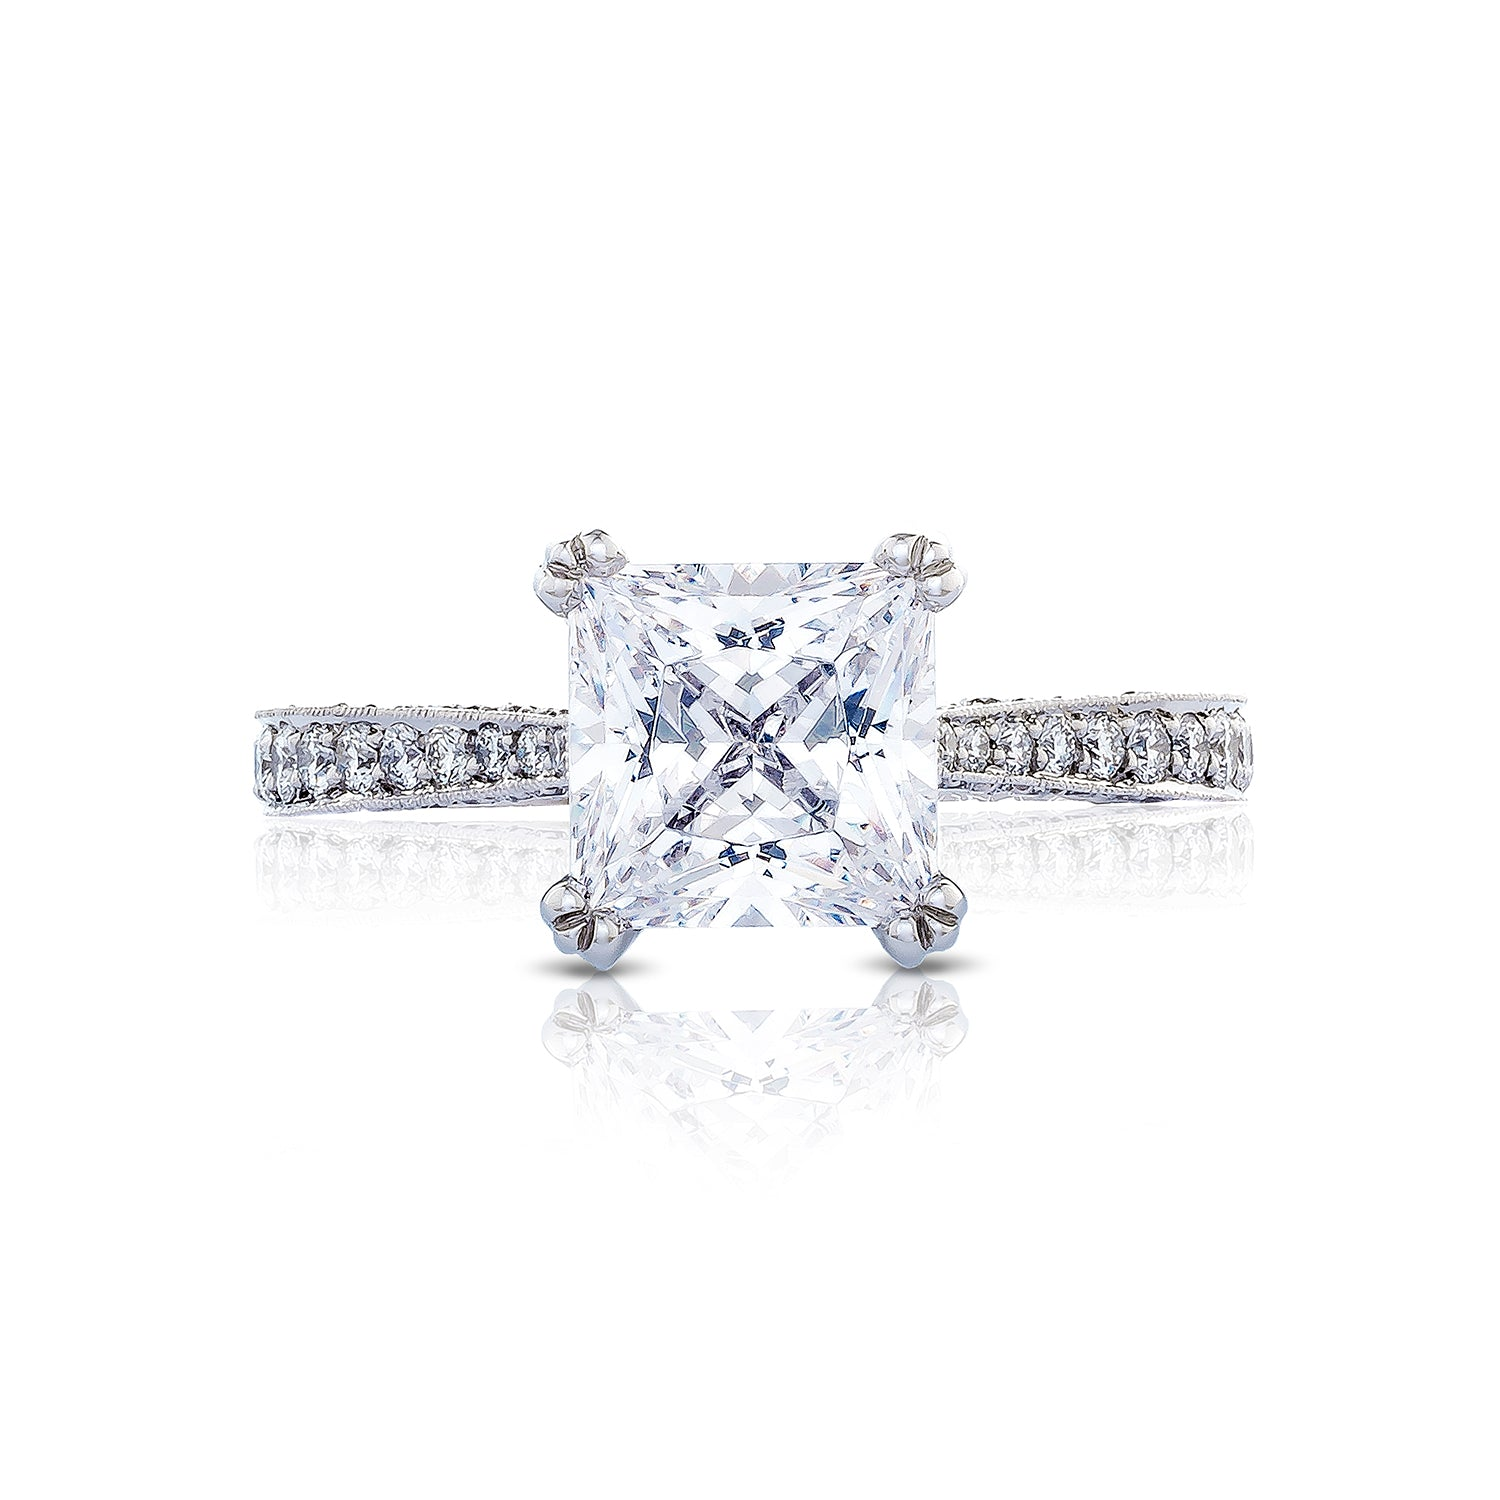 Barmakian Tacori Royalt Diamond Engagement Ring Barmakian Jewelers